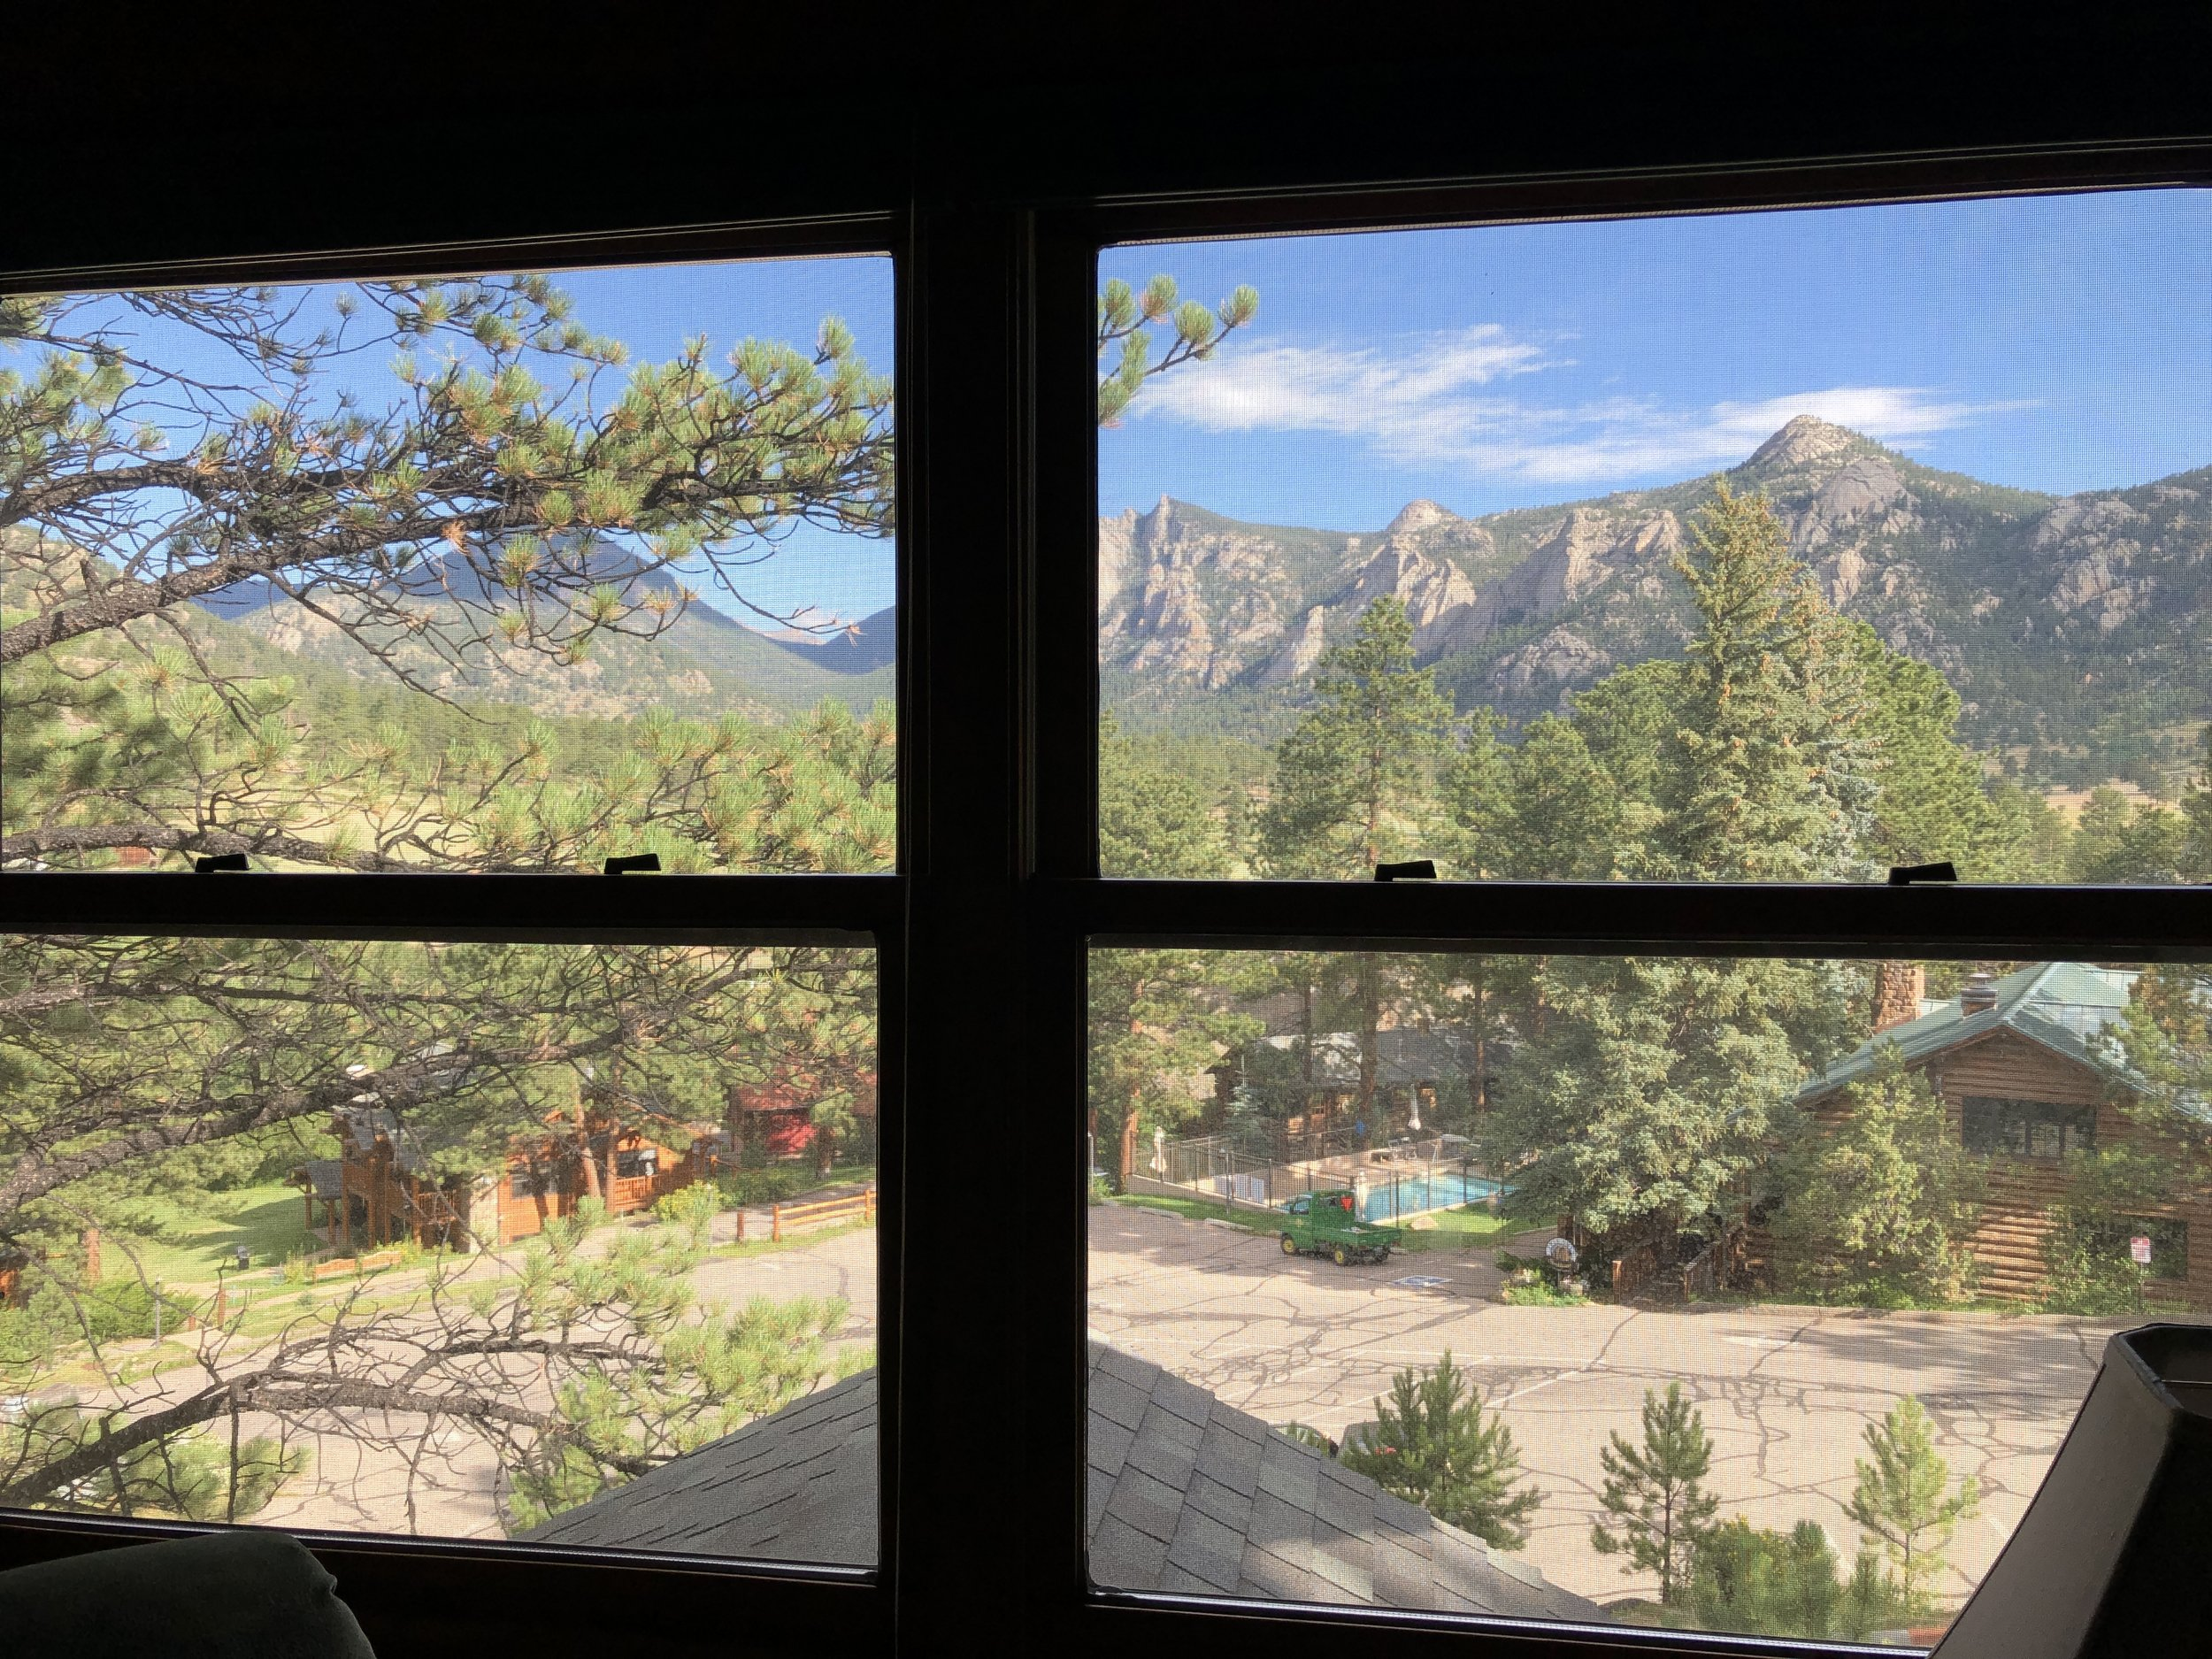 The view from our lodge